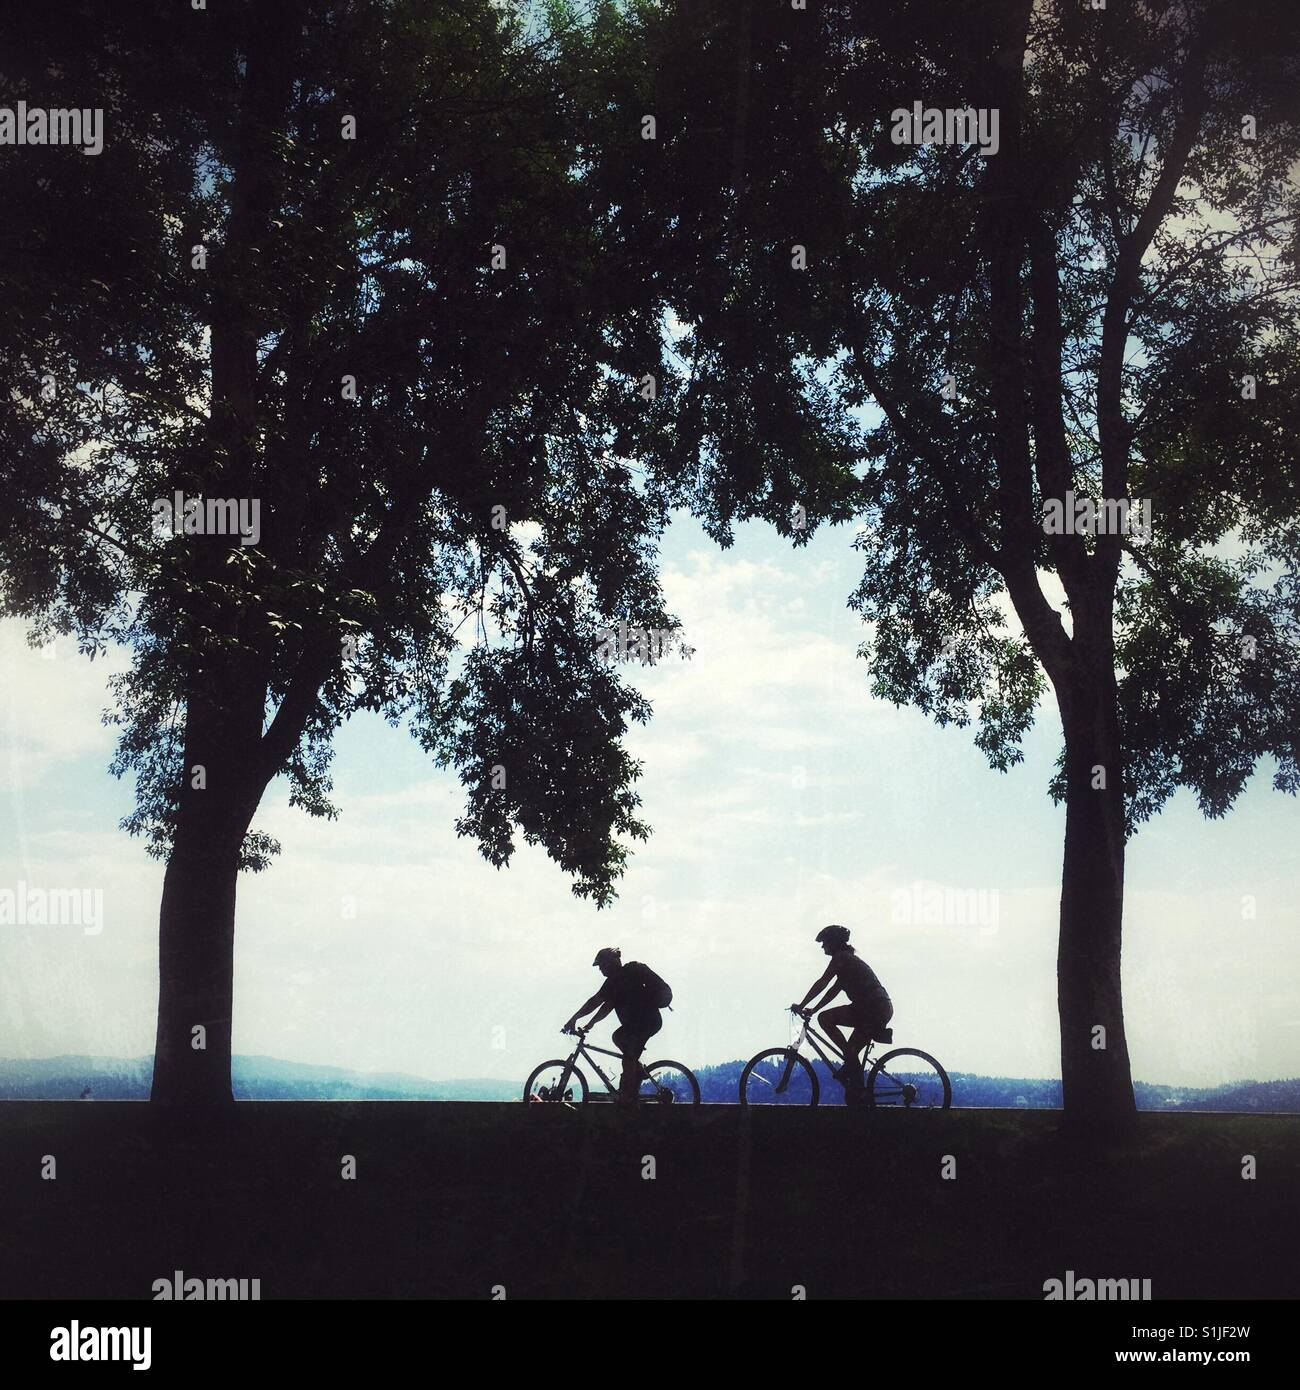 Silhouettes of two bicyclists riding behind the trees near lake Coeur d'Allene in Idaho on a summer day - Stock Image